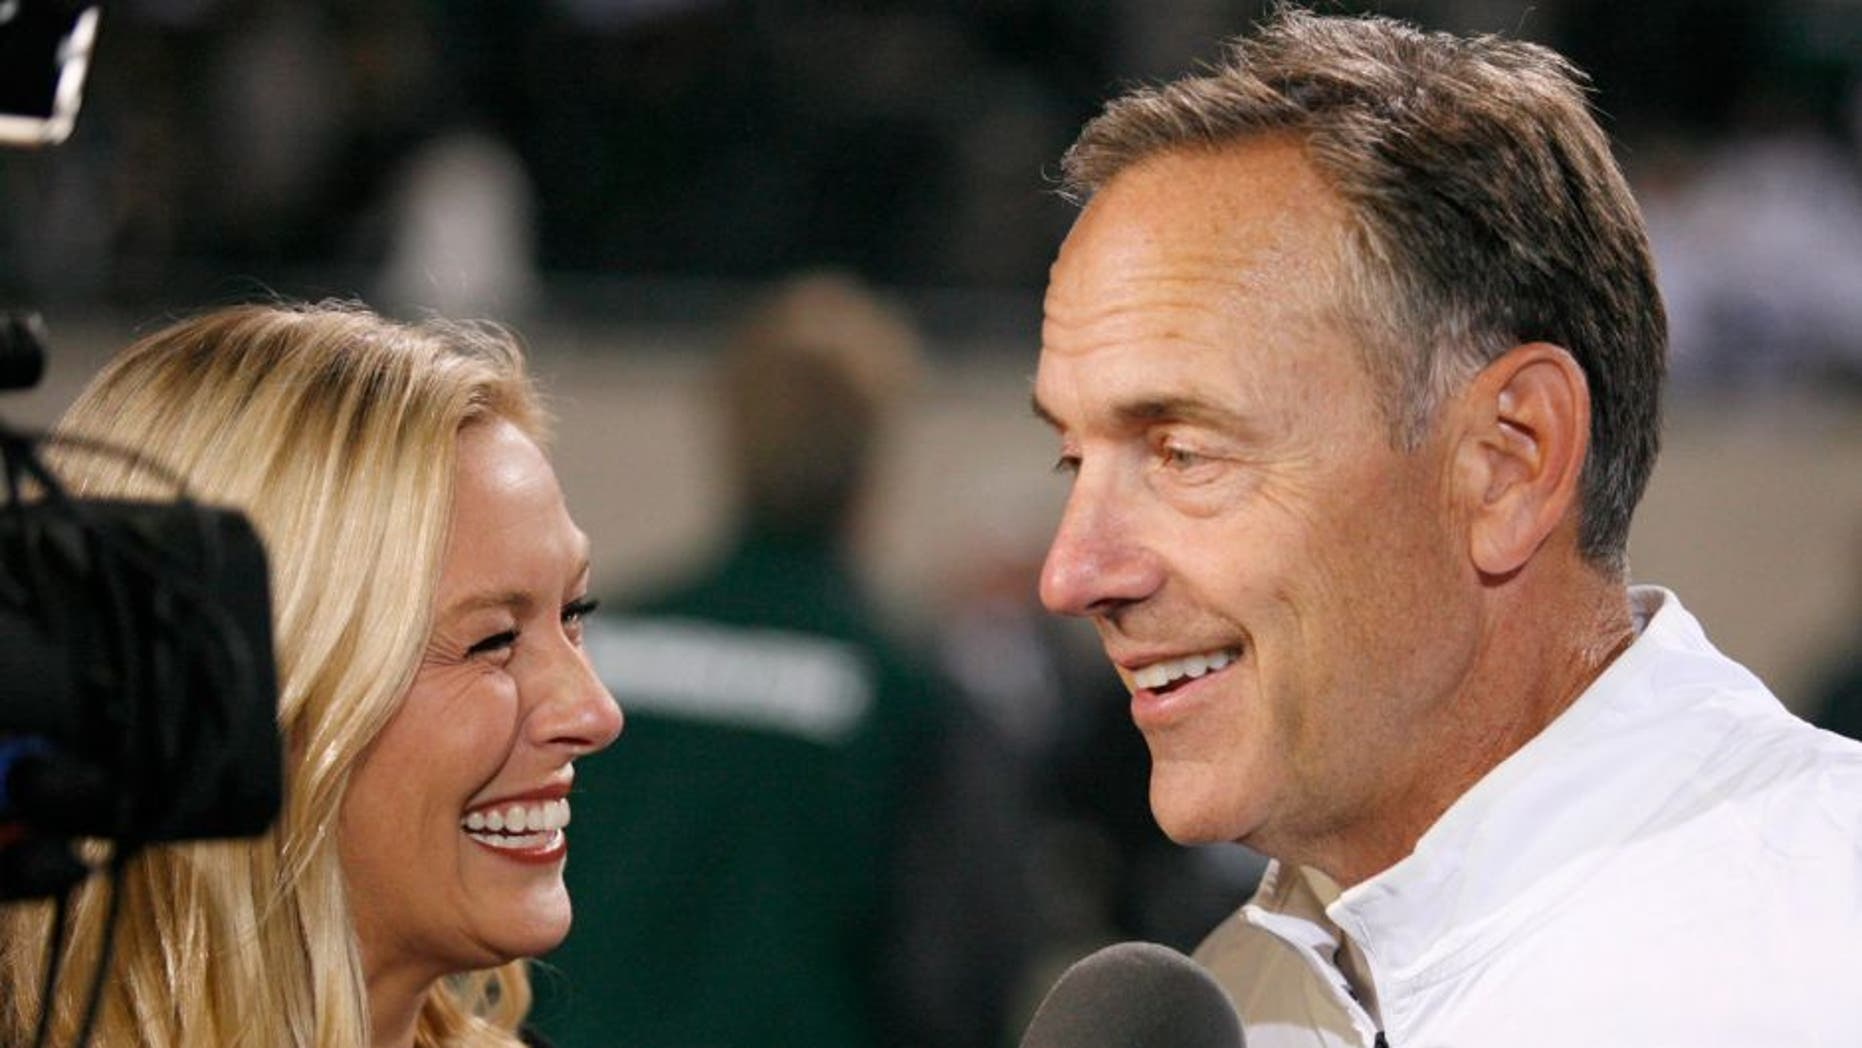 Sep 12, 2015; East Lansing, MI, USA; Michigan State Spartans head coach Mark Dantonio smiles during an interview after the game against the Oregon Ducks at Spartan Stadium. Spartans beat the Ducks 31-28. Mandatory Credit: Raj Mehta-USA TODAY Sports